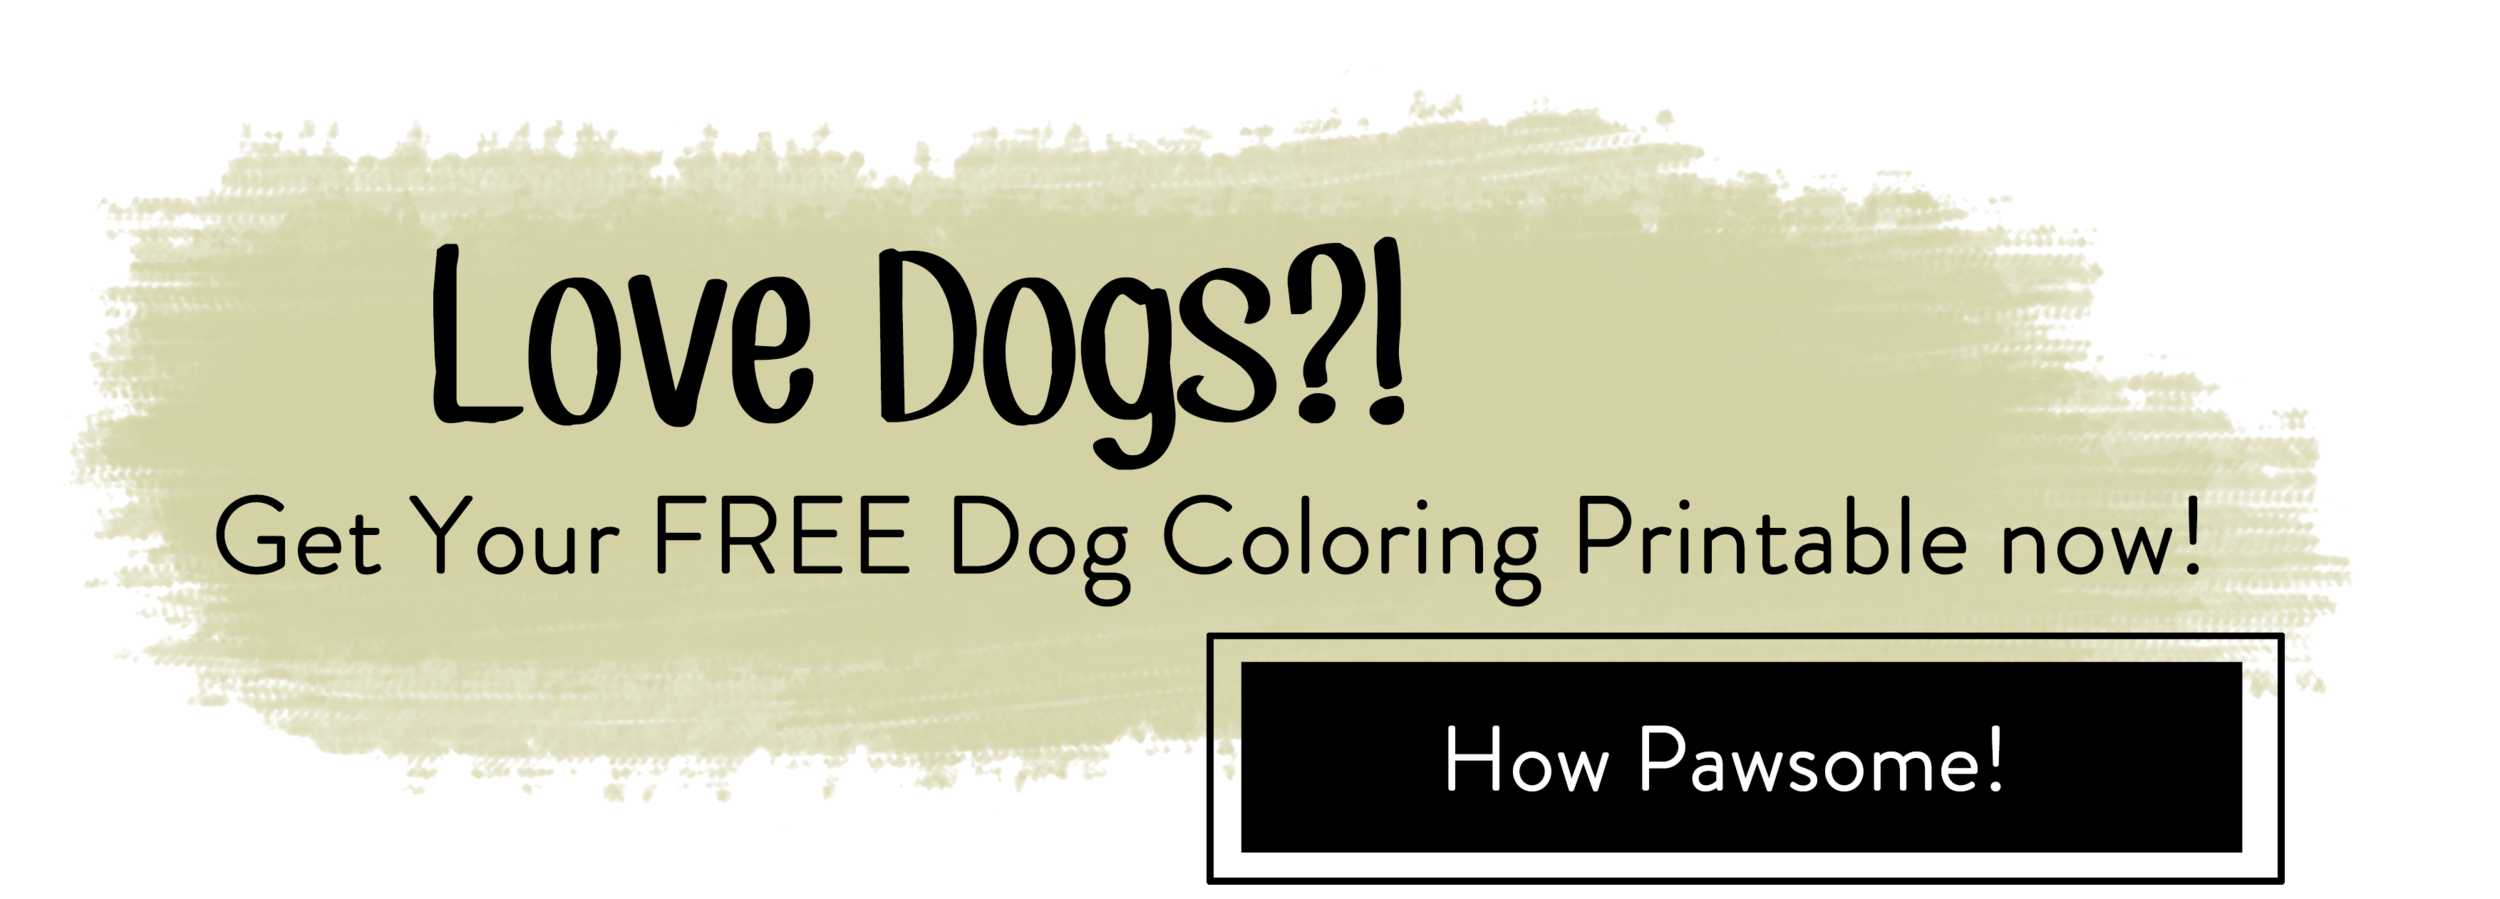 dog coloring page #printable